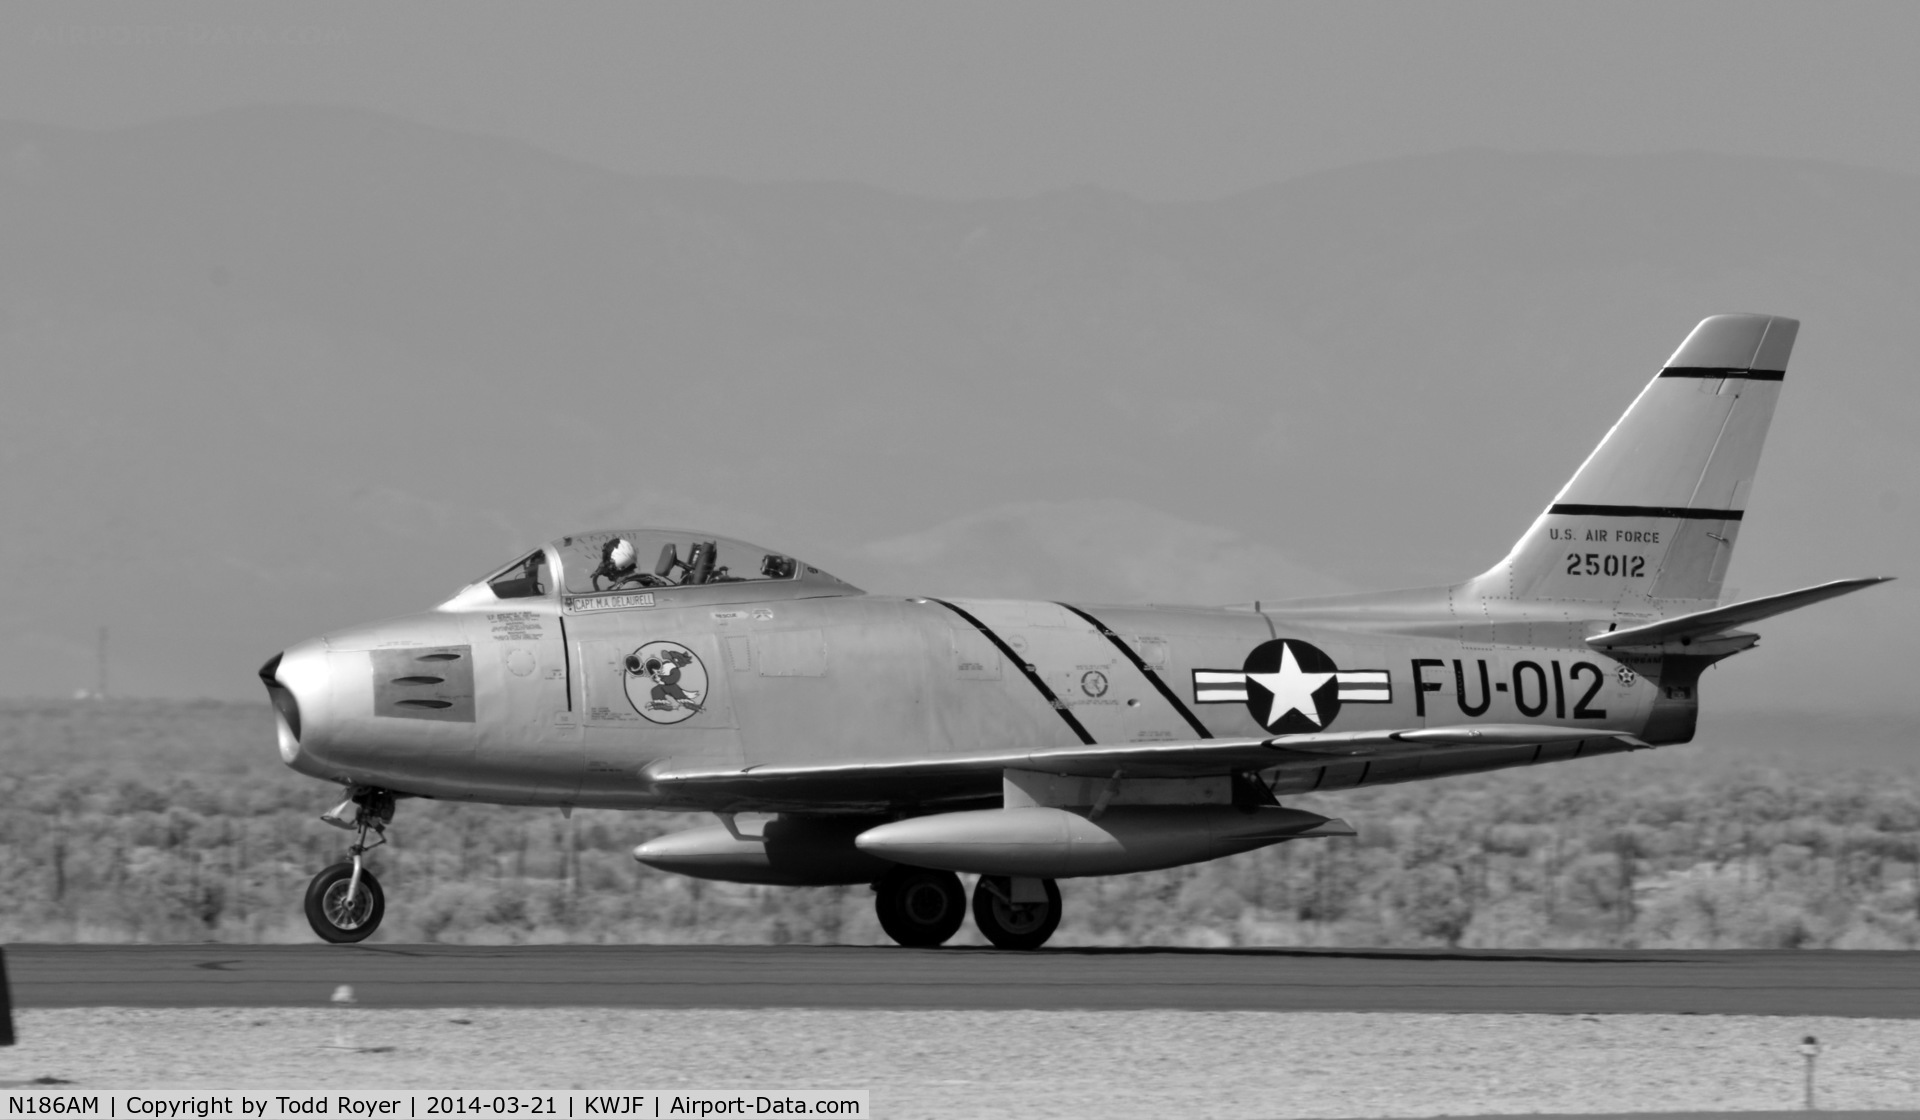 N186AM, 1952 North American F-86F Sabre C/N 191-708, Take off roll